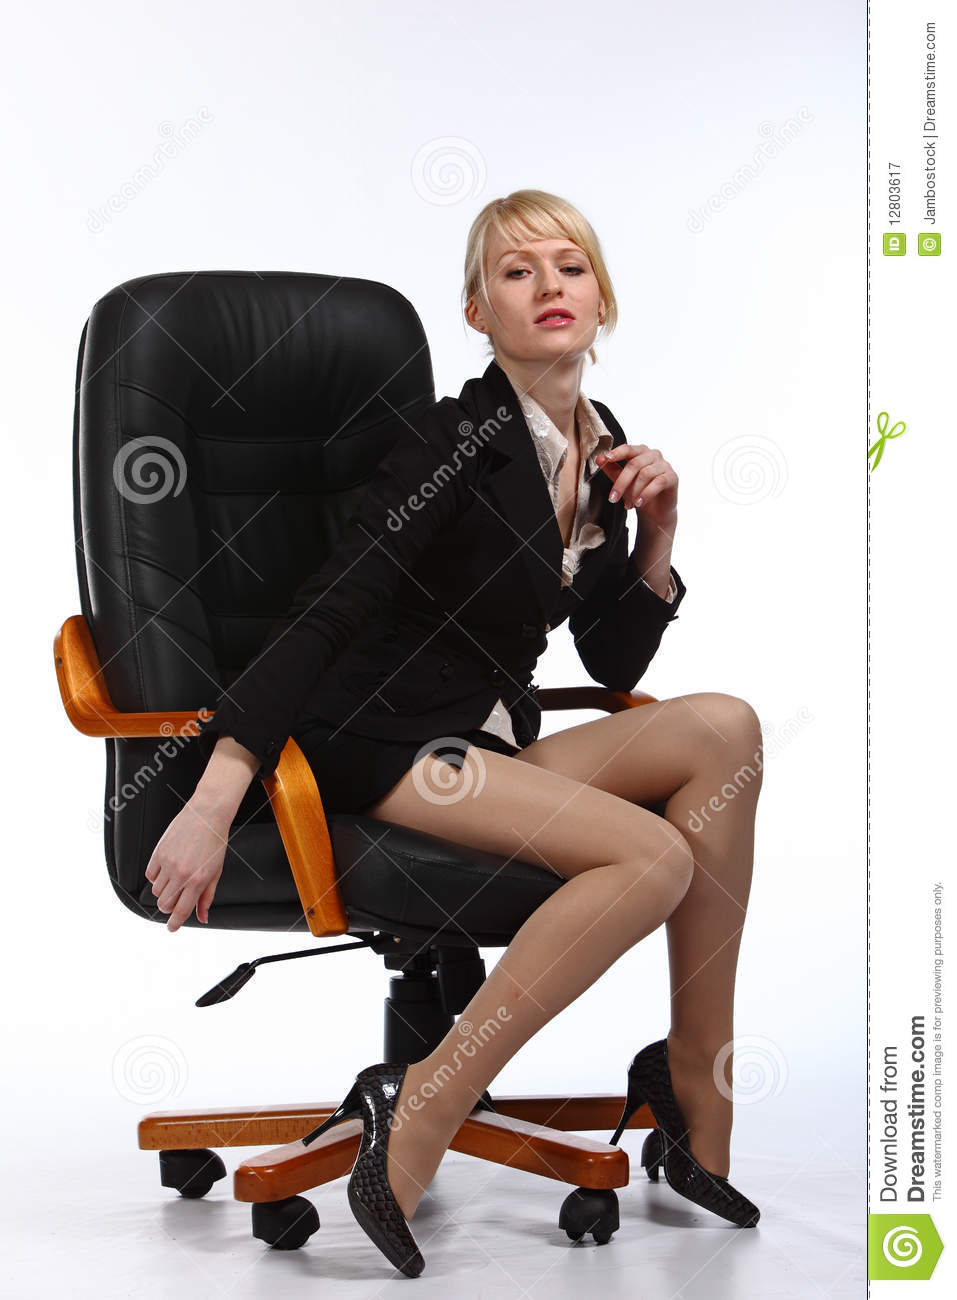 The Young Sexy Business Woman Royalty Free Stock Photography Image 12803617